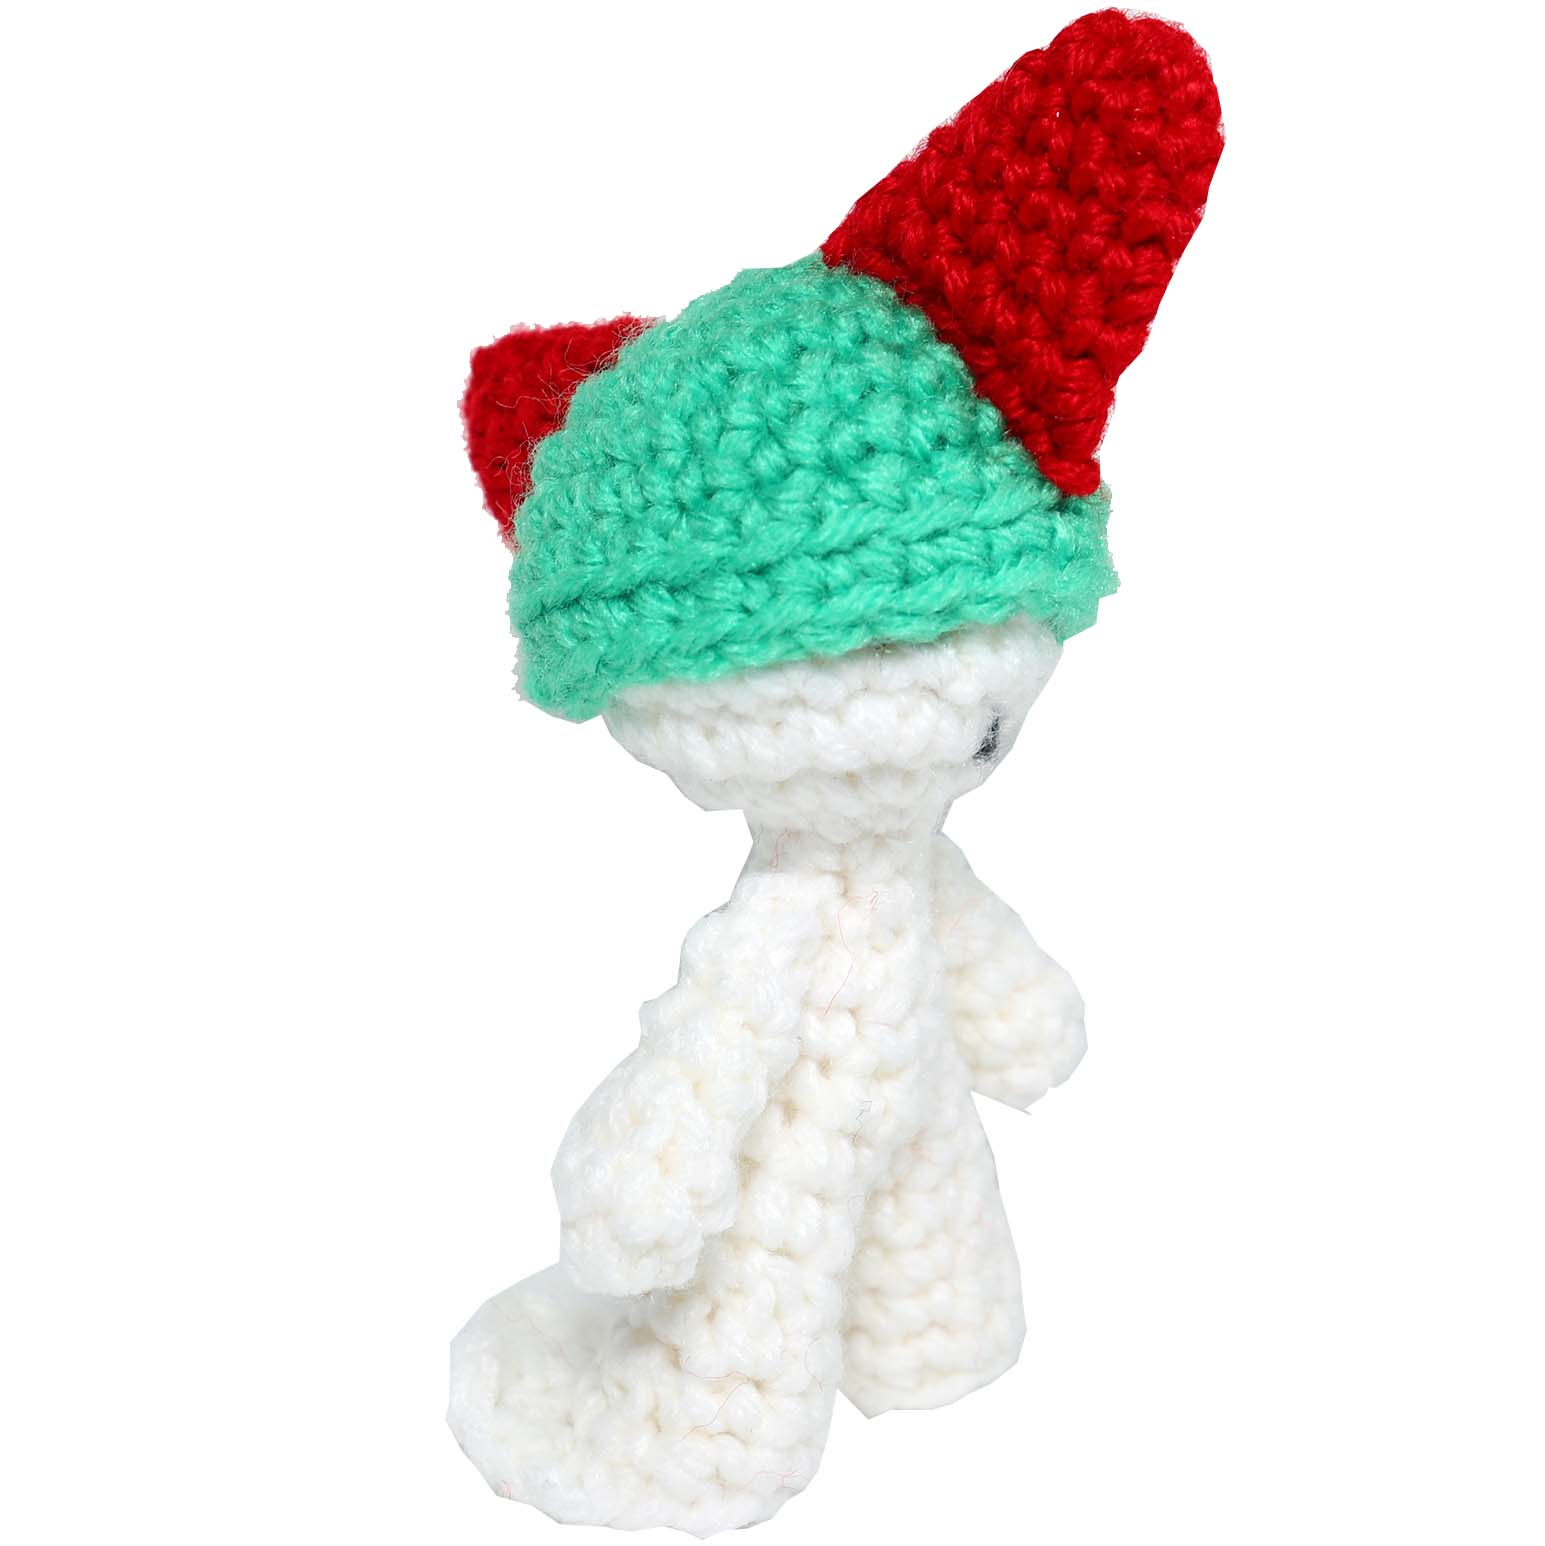 Crochet Ralts Pattern